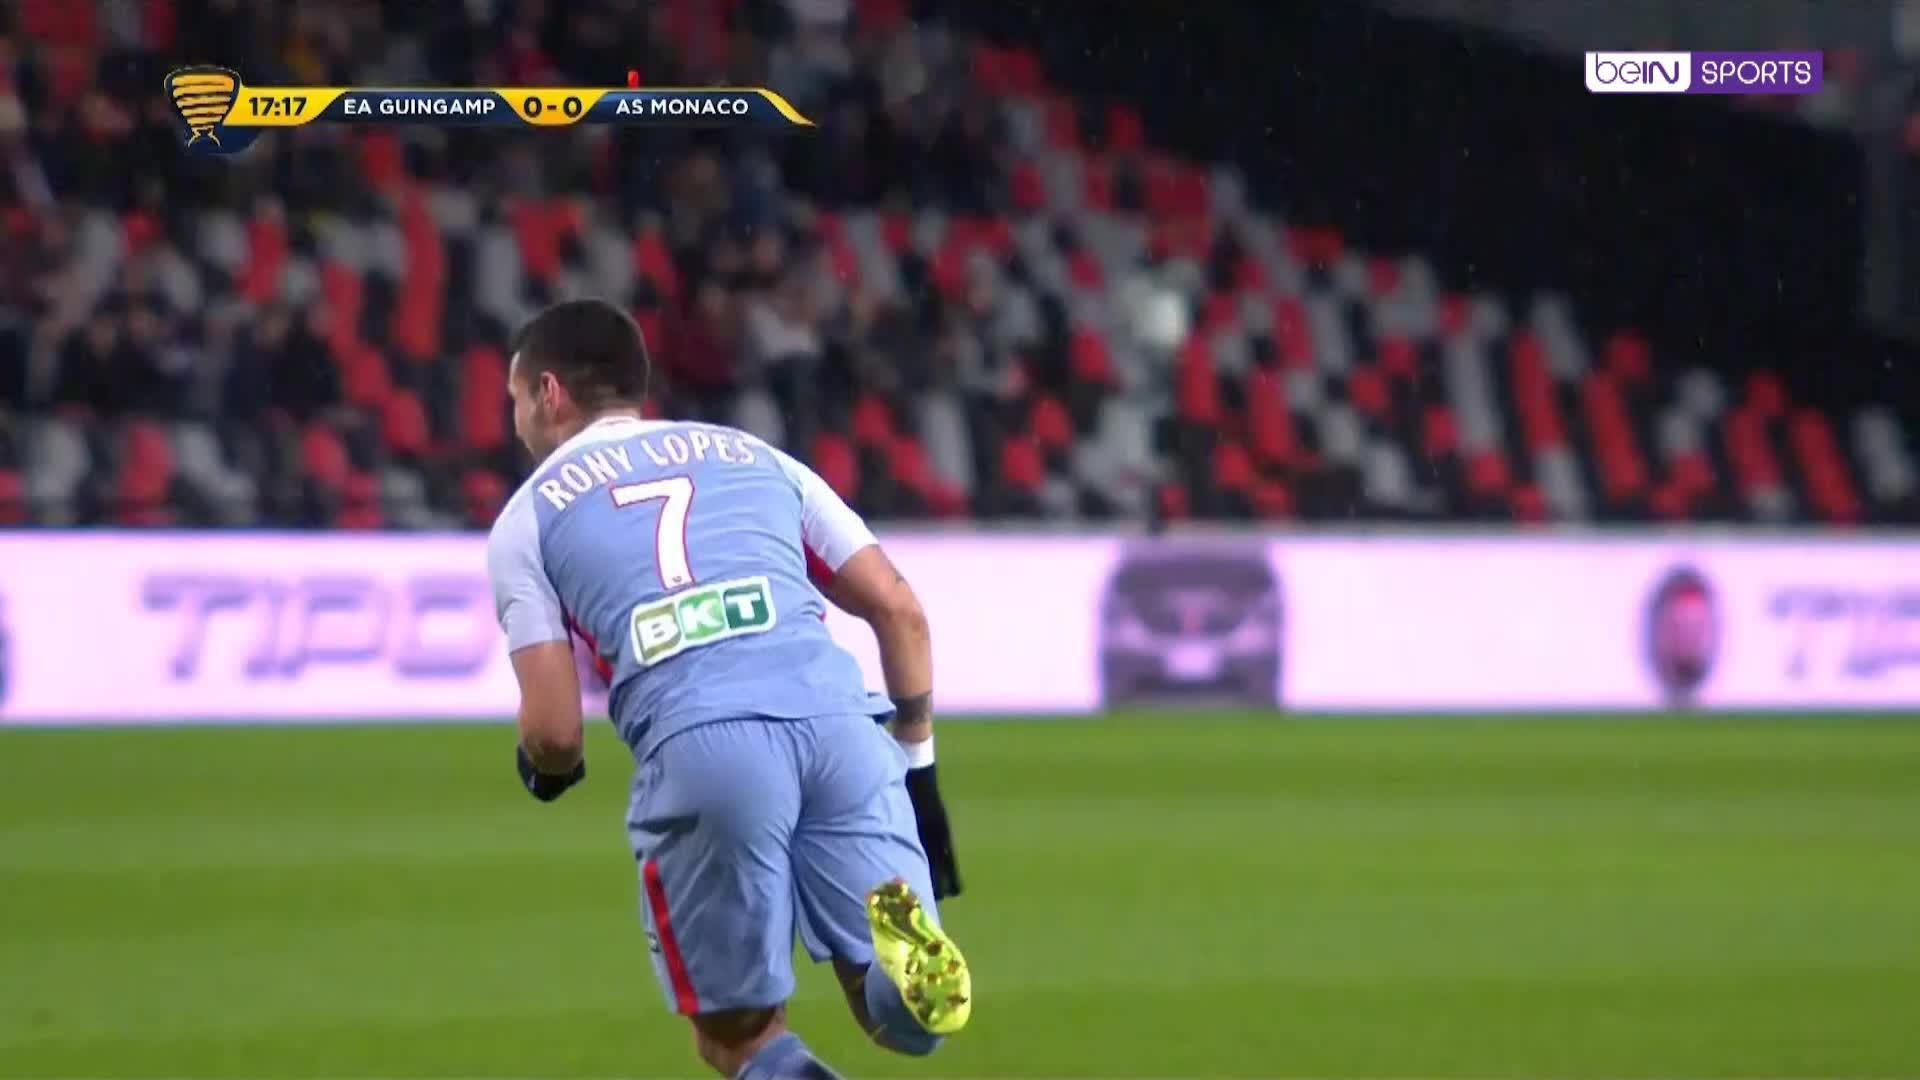 Lopes' bicycle kick gives Monaco the lead - 24 Live Sport News